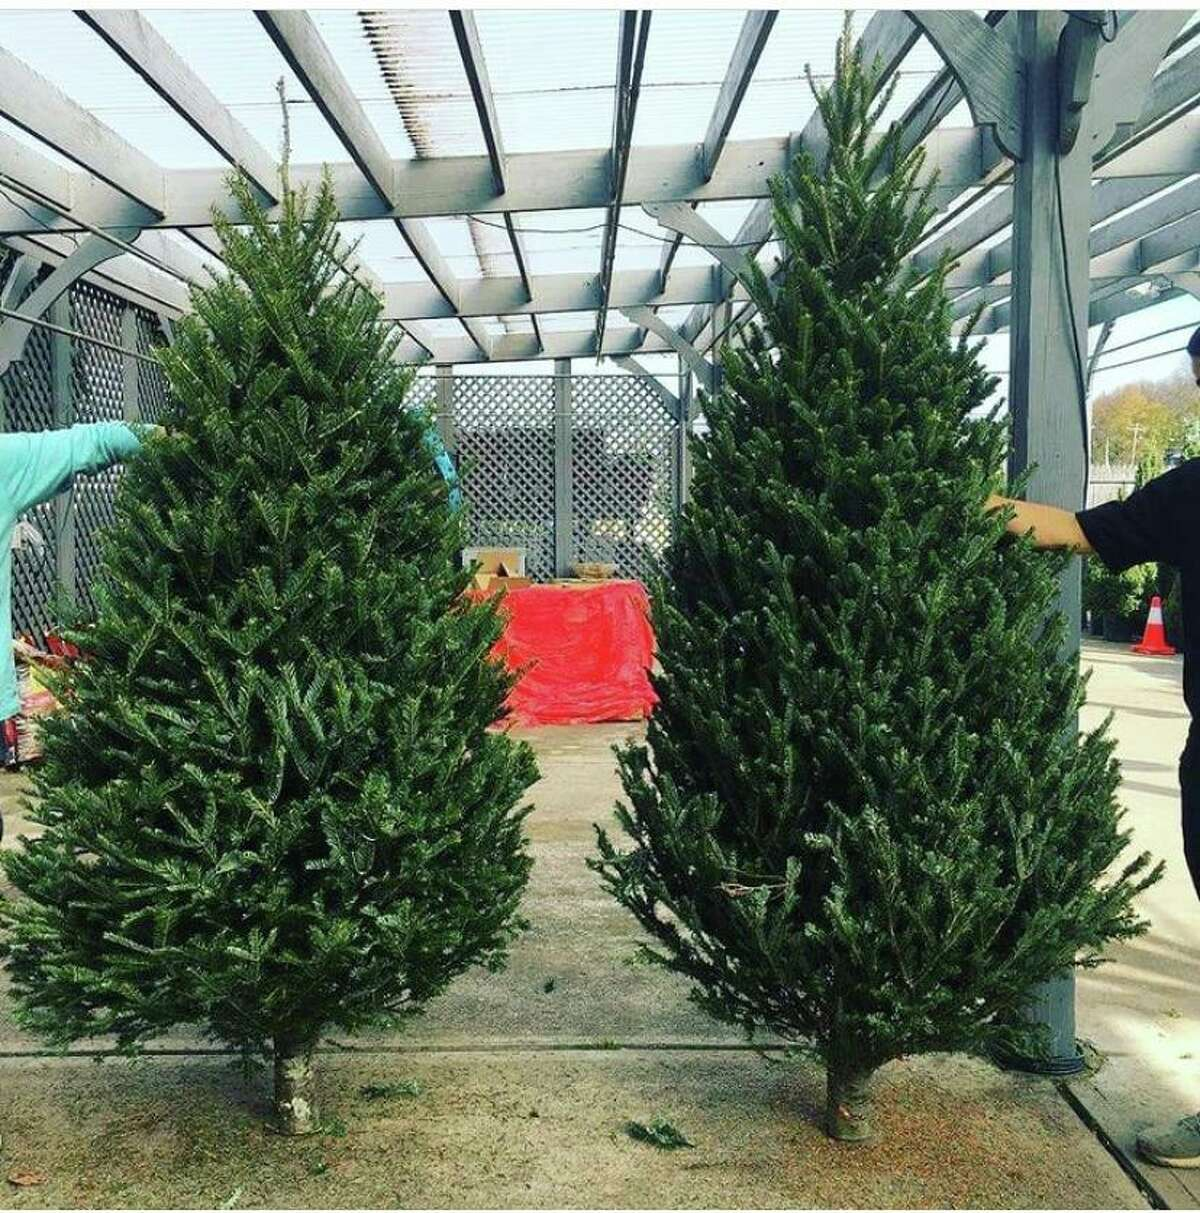 Ten percent of sales proceeds at Nielsen's Florist on Thursday will go to benefit Darien EMS Post 53. Also, Posties will help with Christmas tree sales on Thursday from 3 to 5 p.m. with 50 percent of cash tips to go to Post 53.